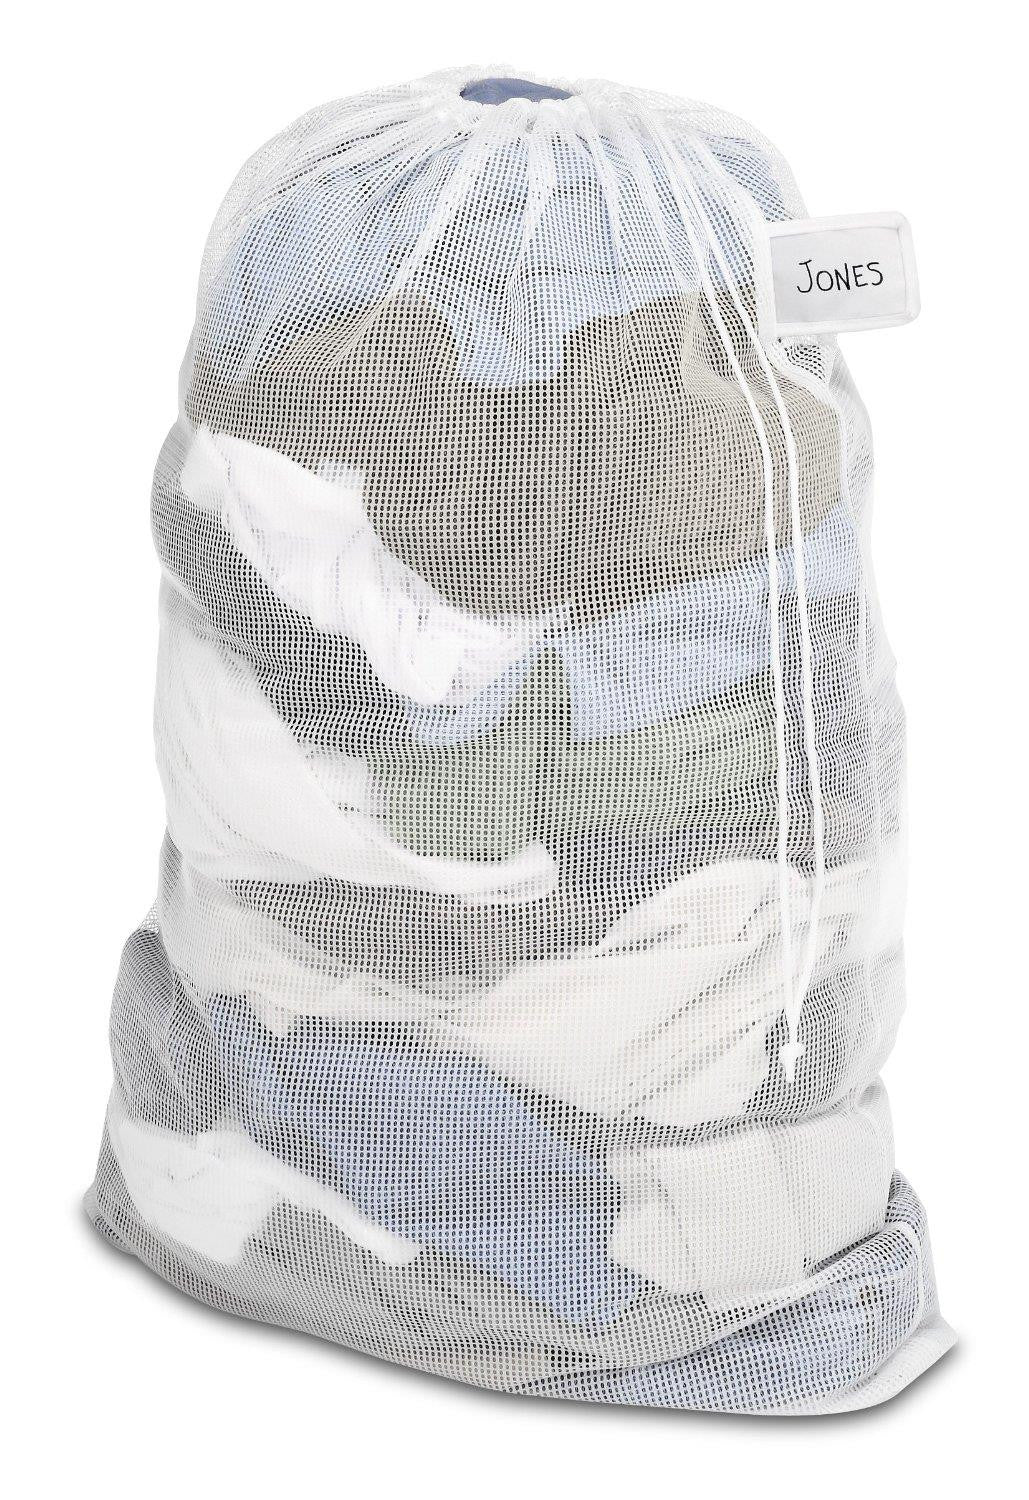 Whitmor Mesh Laundry Bag & ID Tag